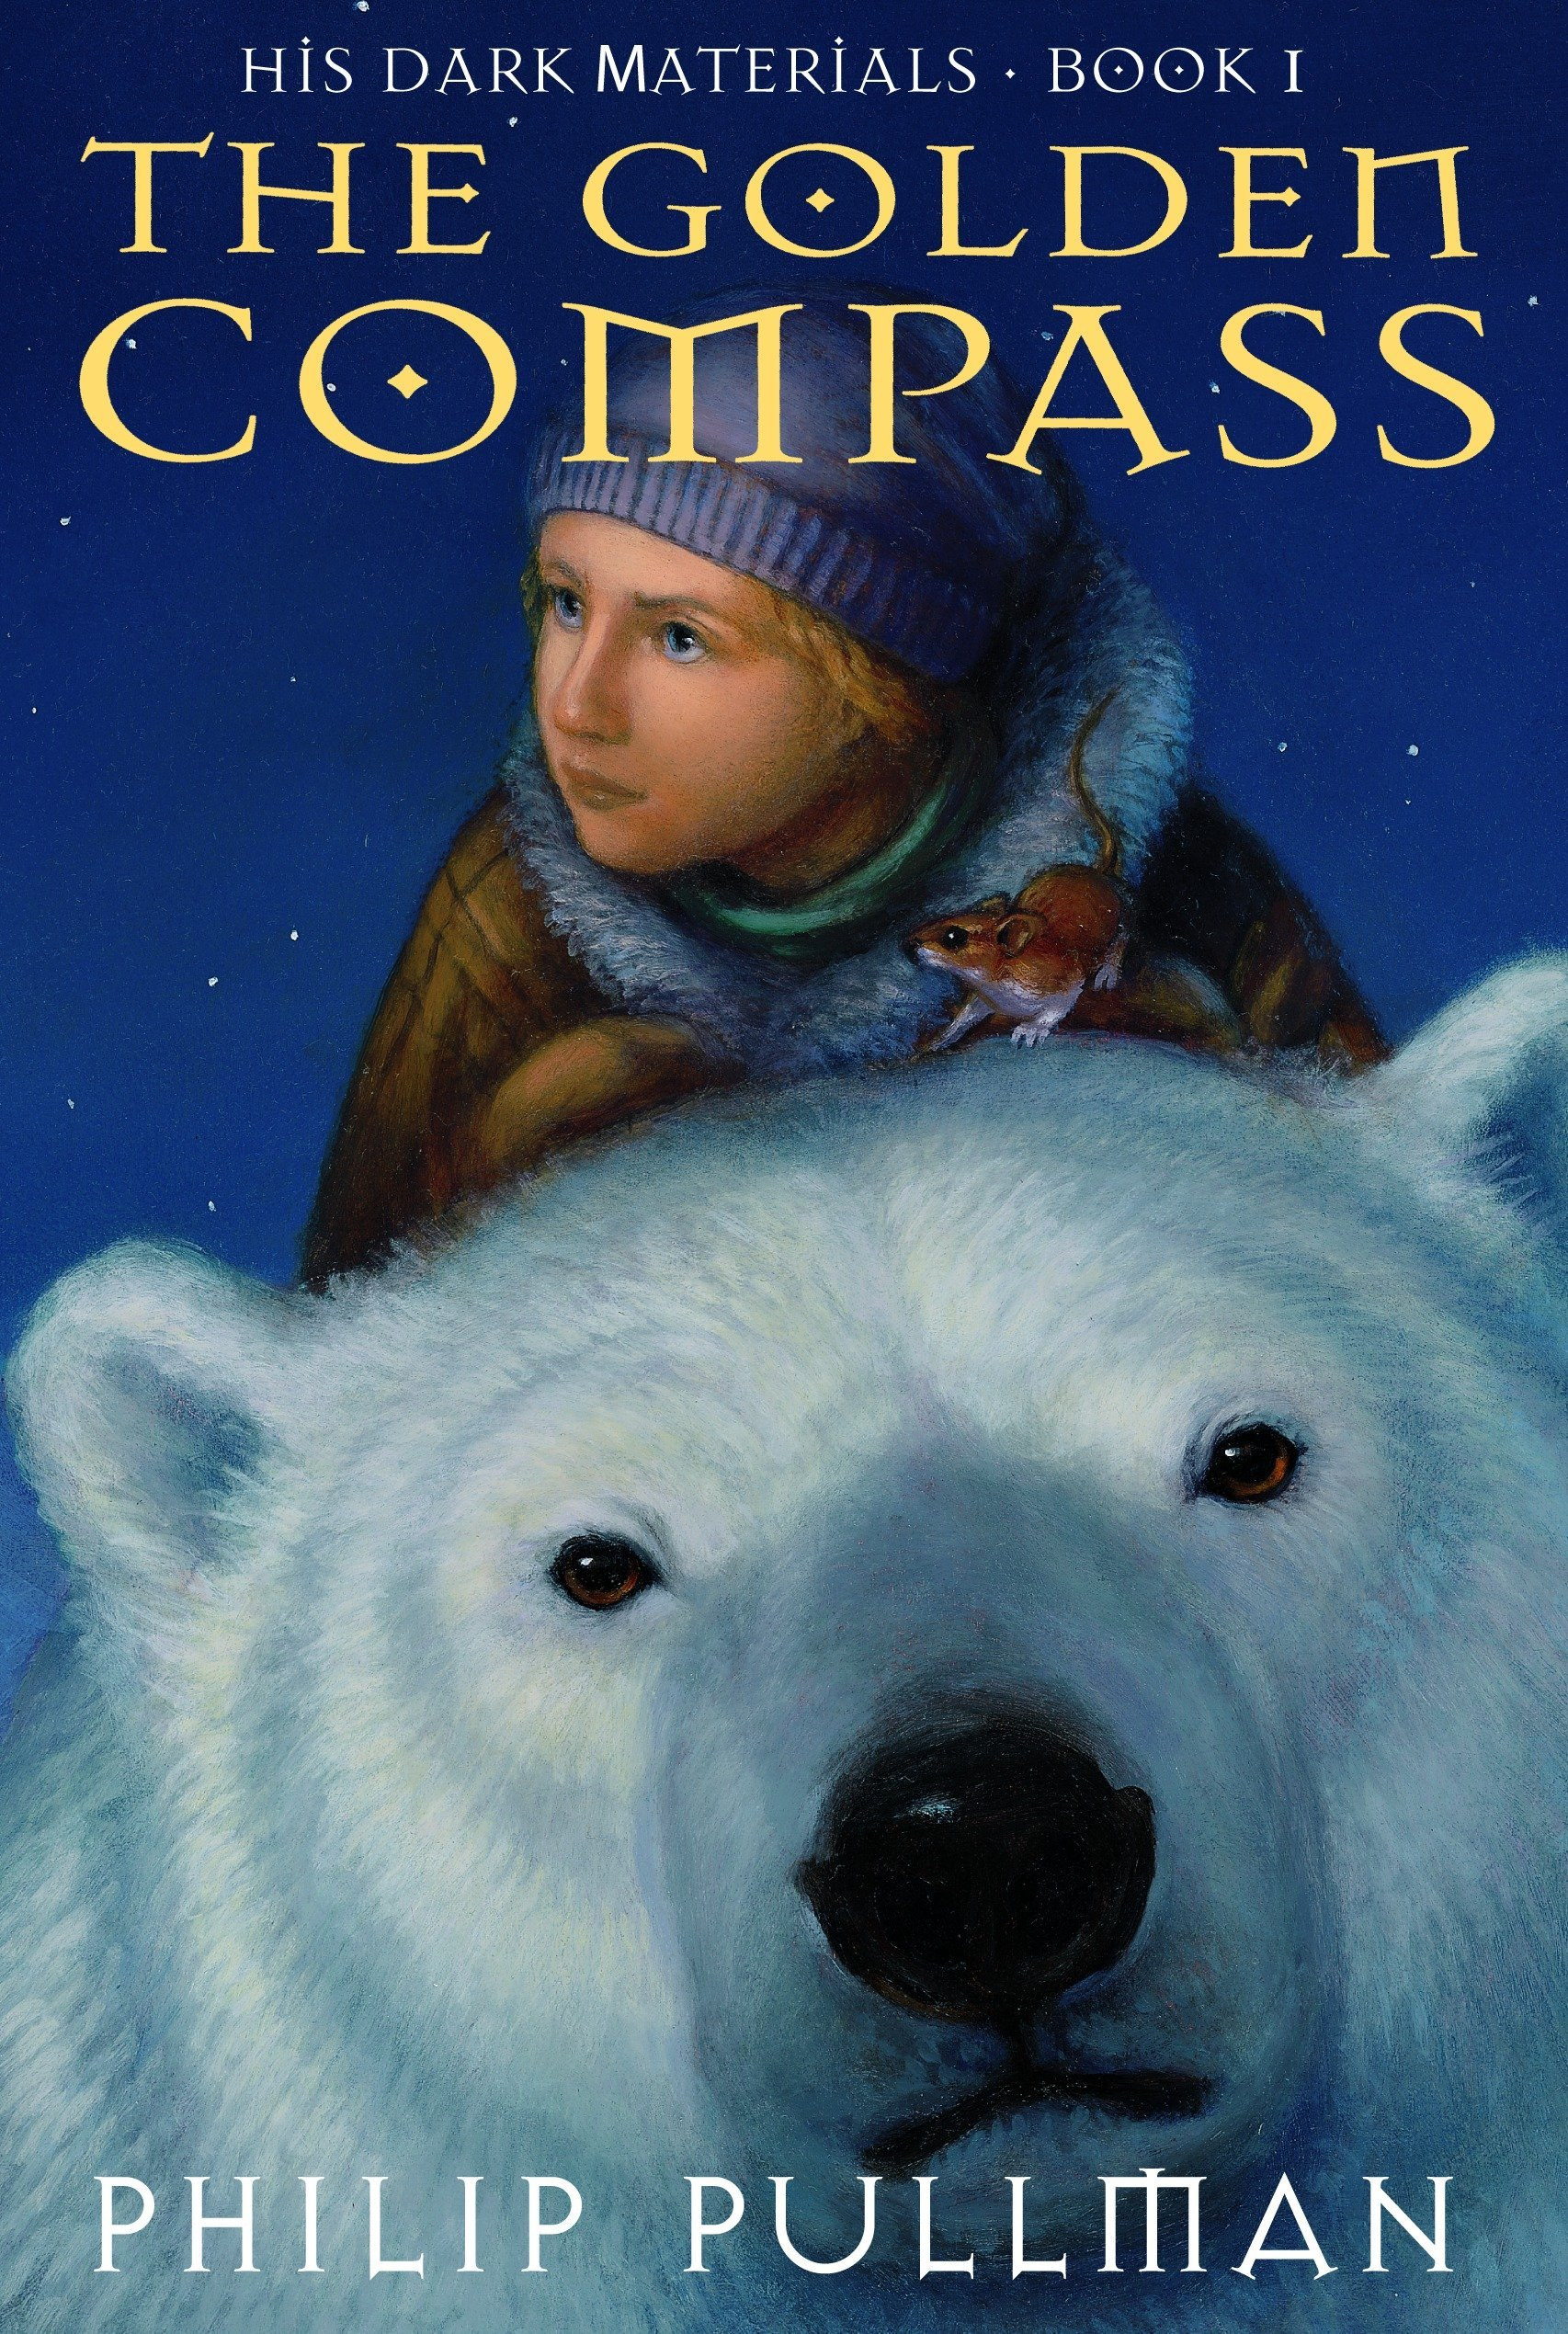 Image result for the golden compass book